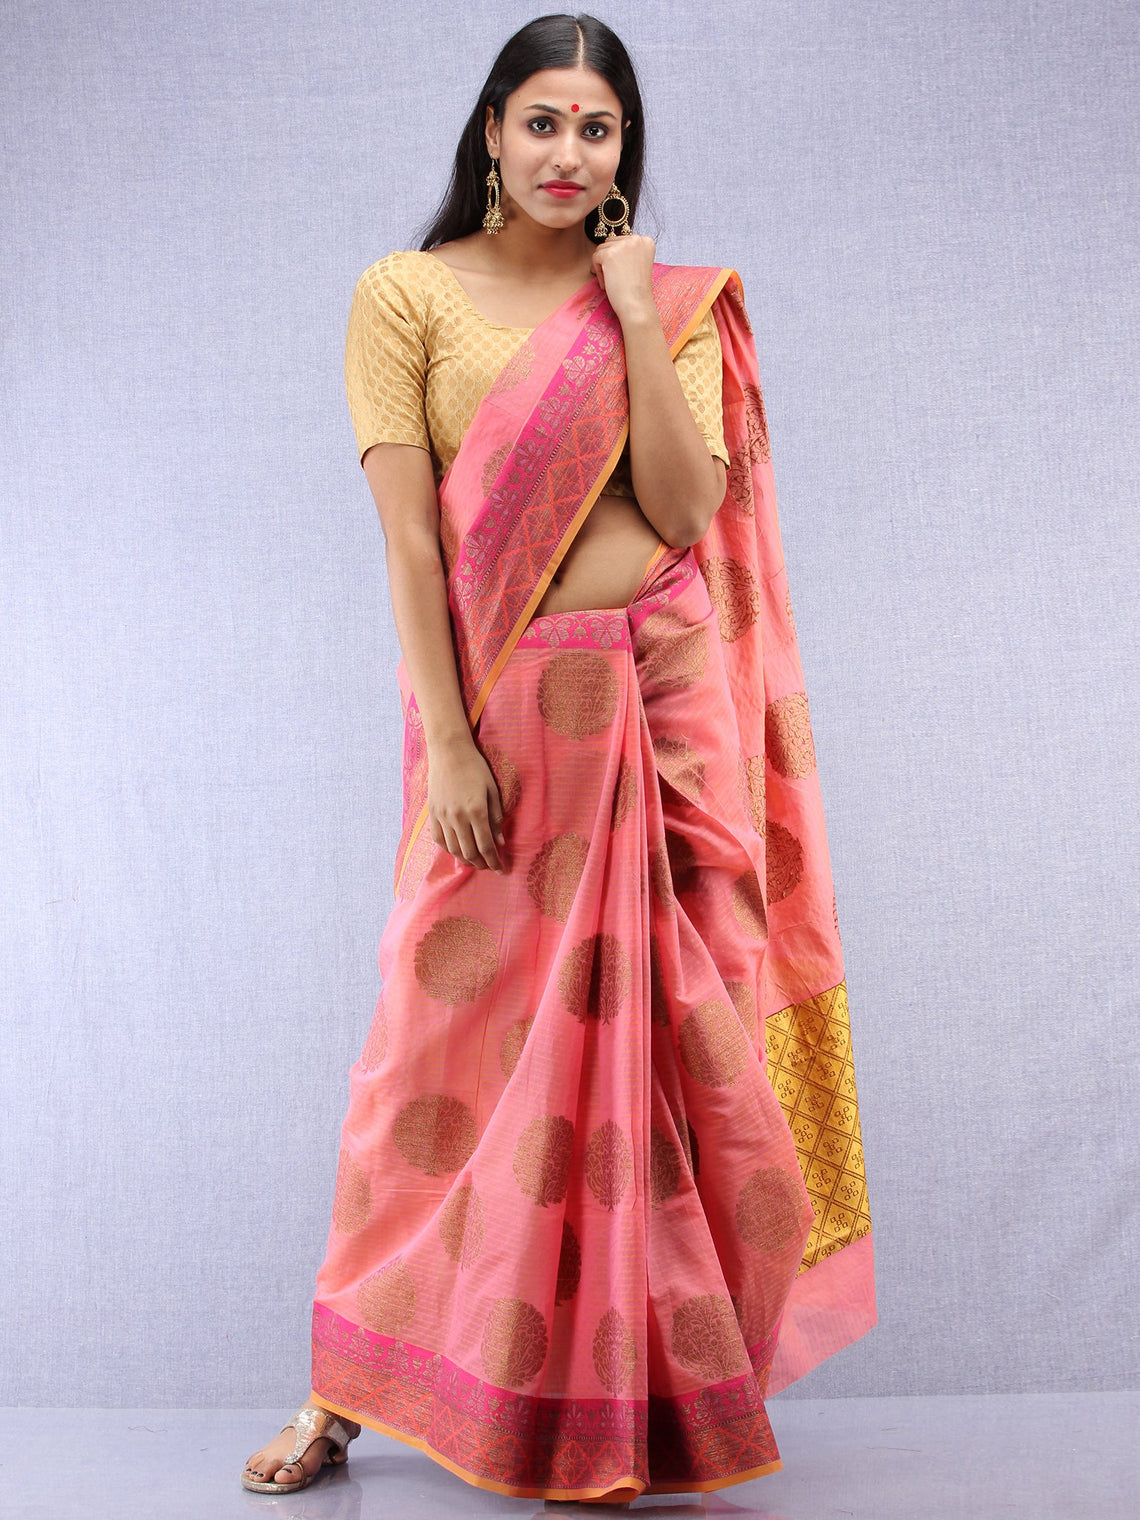 Banarasee Cotton Silk Saree With Zari Work - Pink Yellow & Gold - S031704421